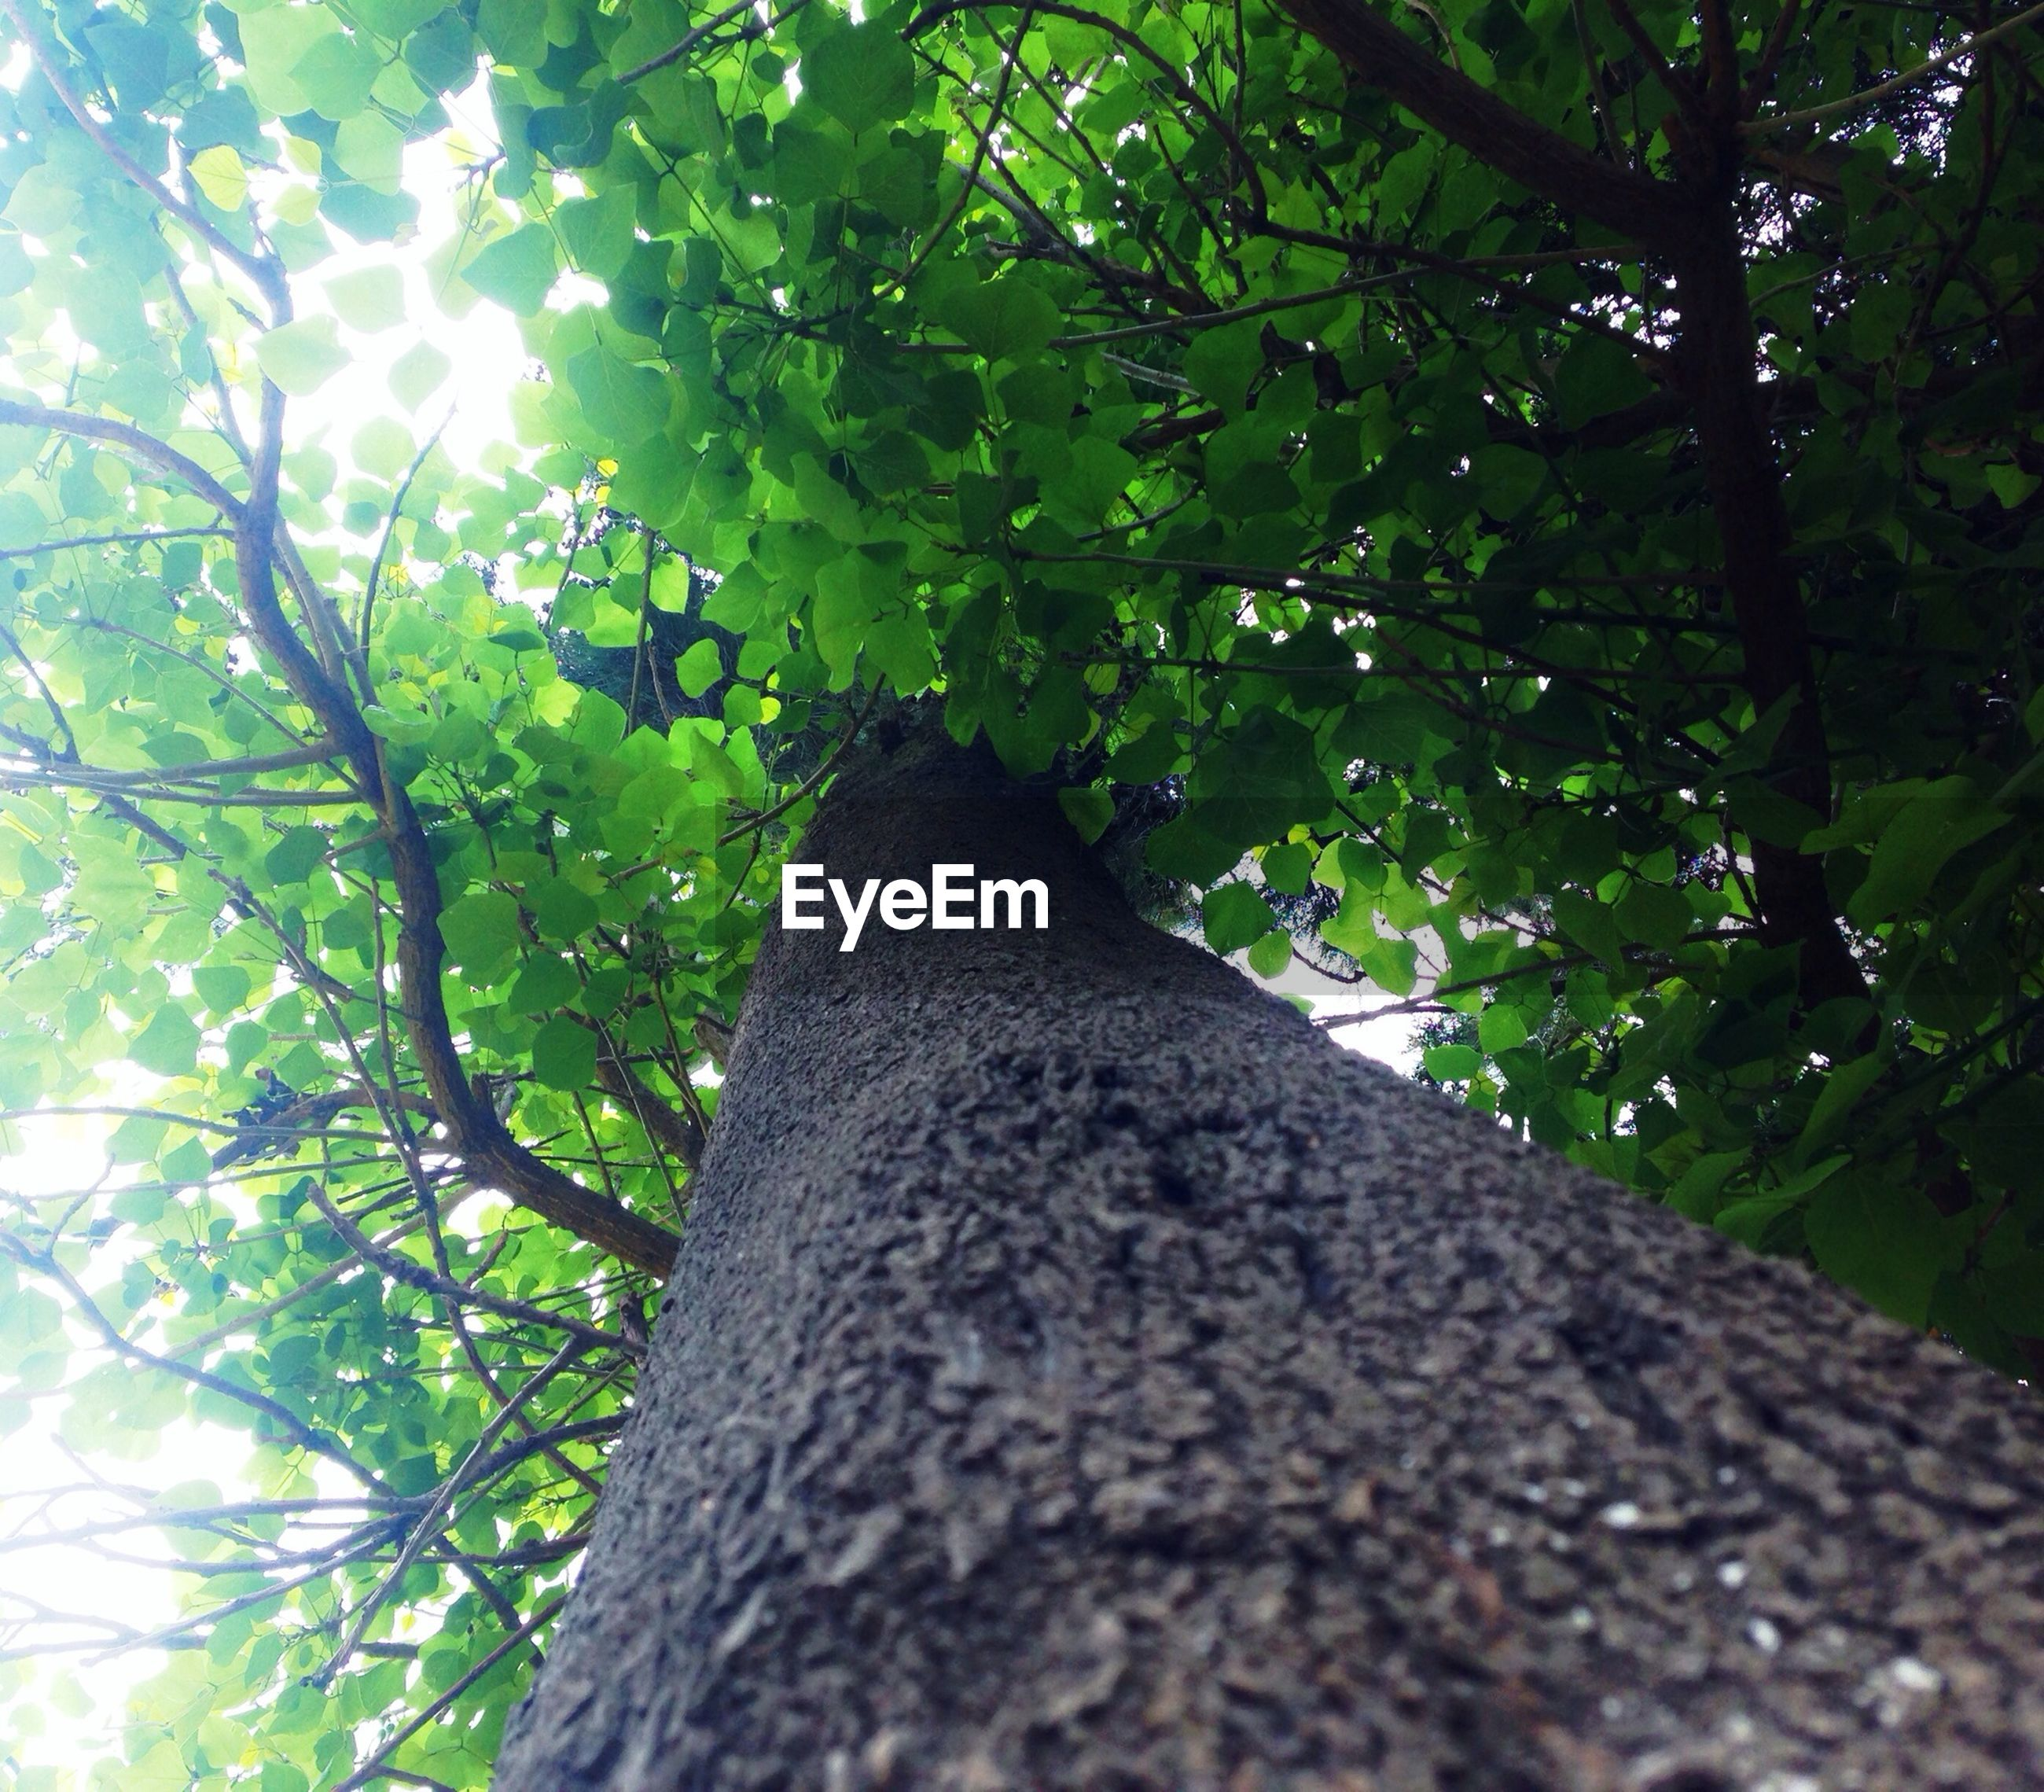 tree, low angle view, growth, branch, tree trunk, forest, nature, green color, tranquility, the way forward, leaf, sunlight, day, beauty in nature, outdoors, no people, wood - material, diminishing perspective, tranquil scene, sky